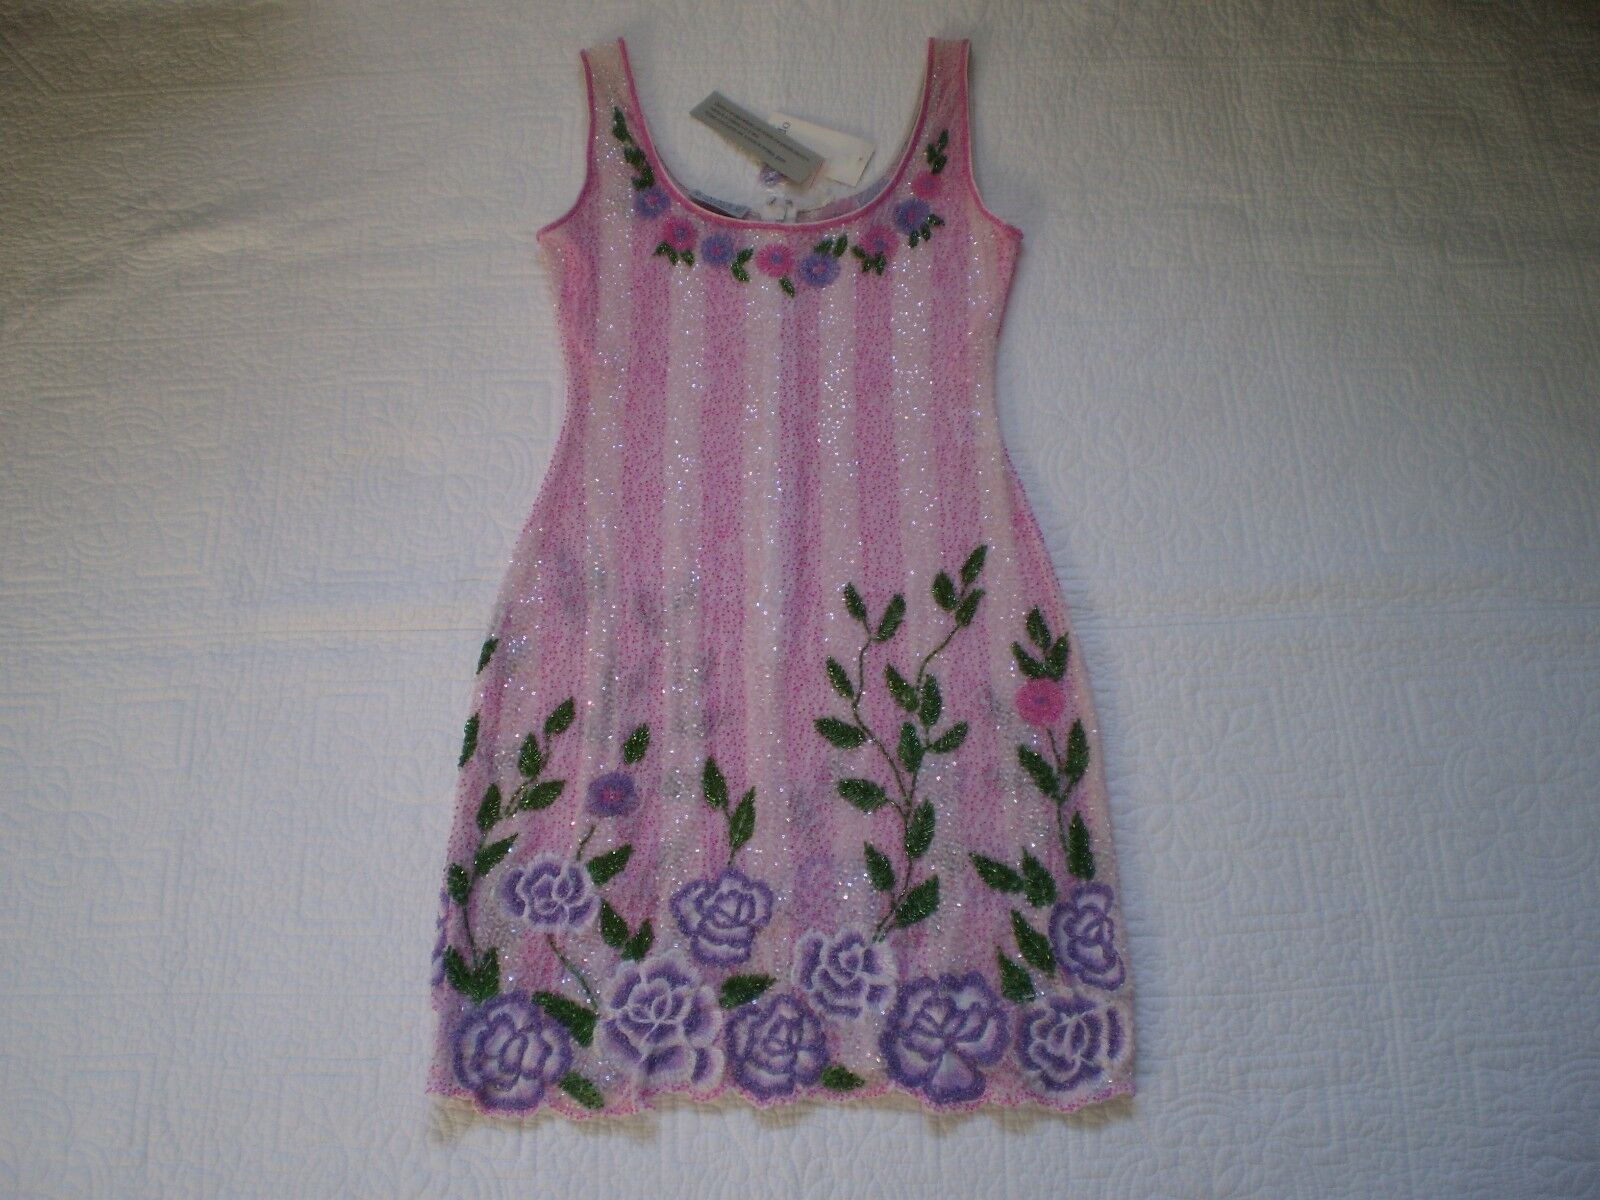 NWT MADE IN ITALY PALACE PINK MULTI SHEER SHEER SHEER BEADED FLORAL SLEEVELESS MINI DRESS M a8ab35